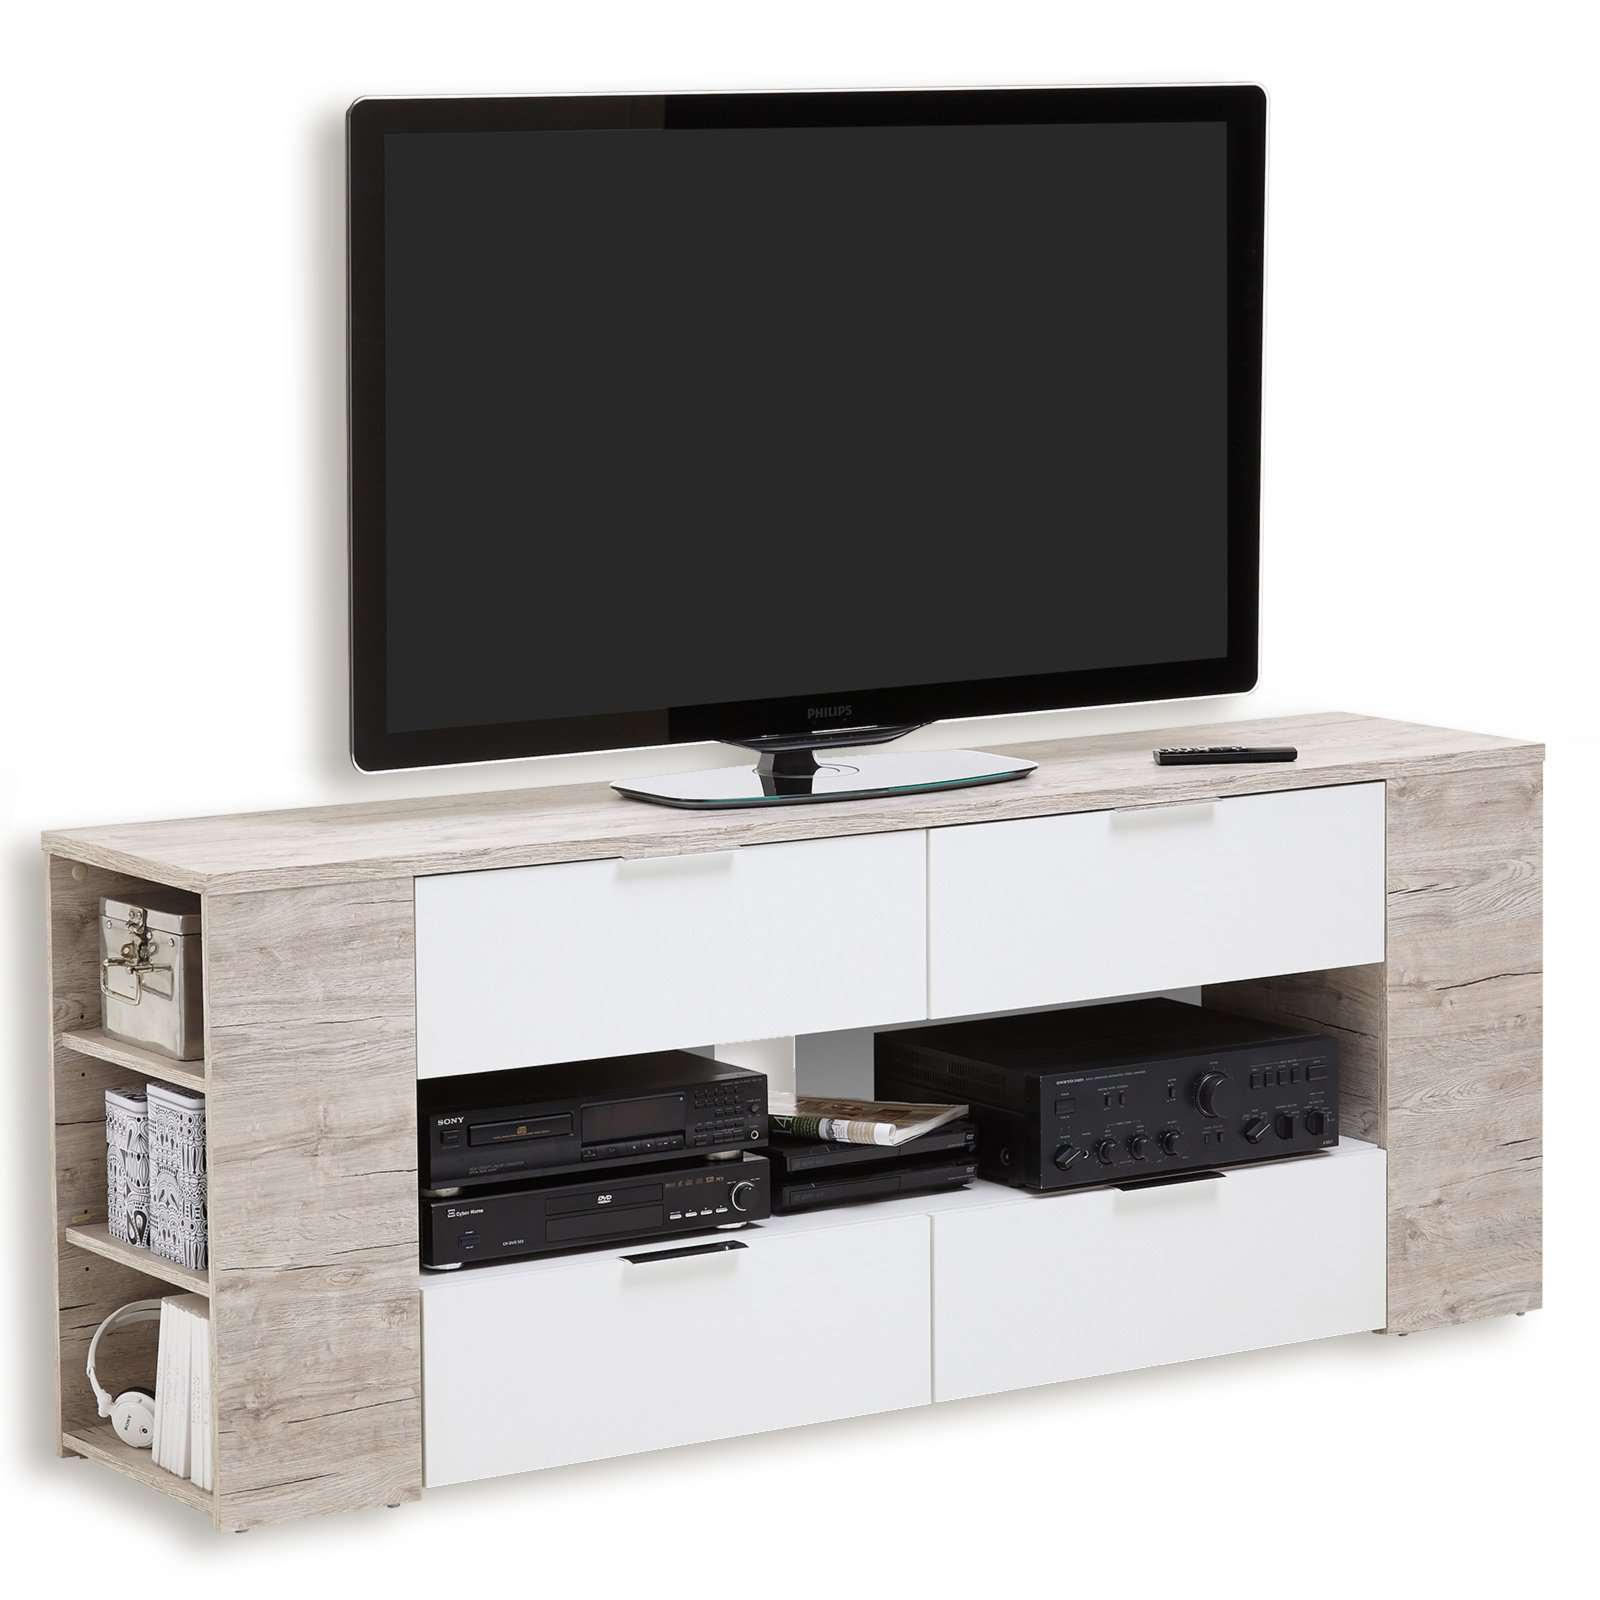 Tv Lowboards Tv Lowboard Tabor 4 Sandeiche Weiß 180 Cm Tv